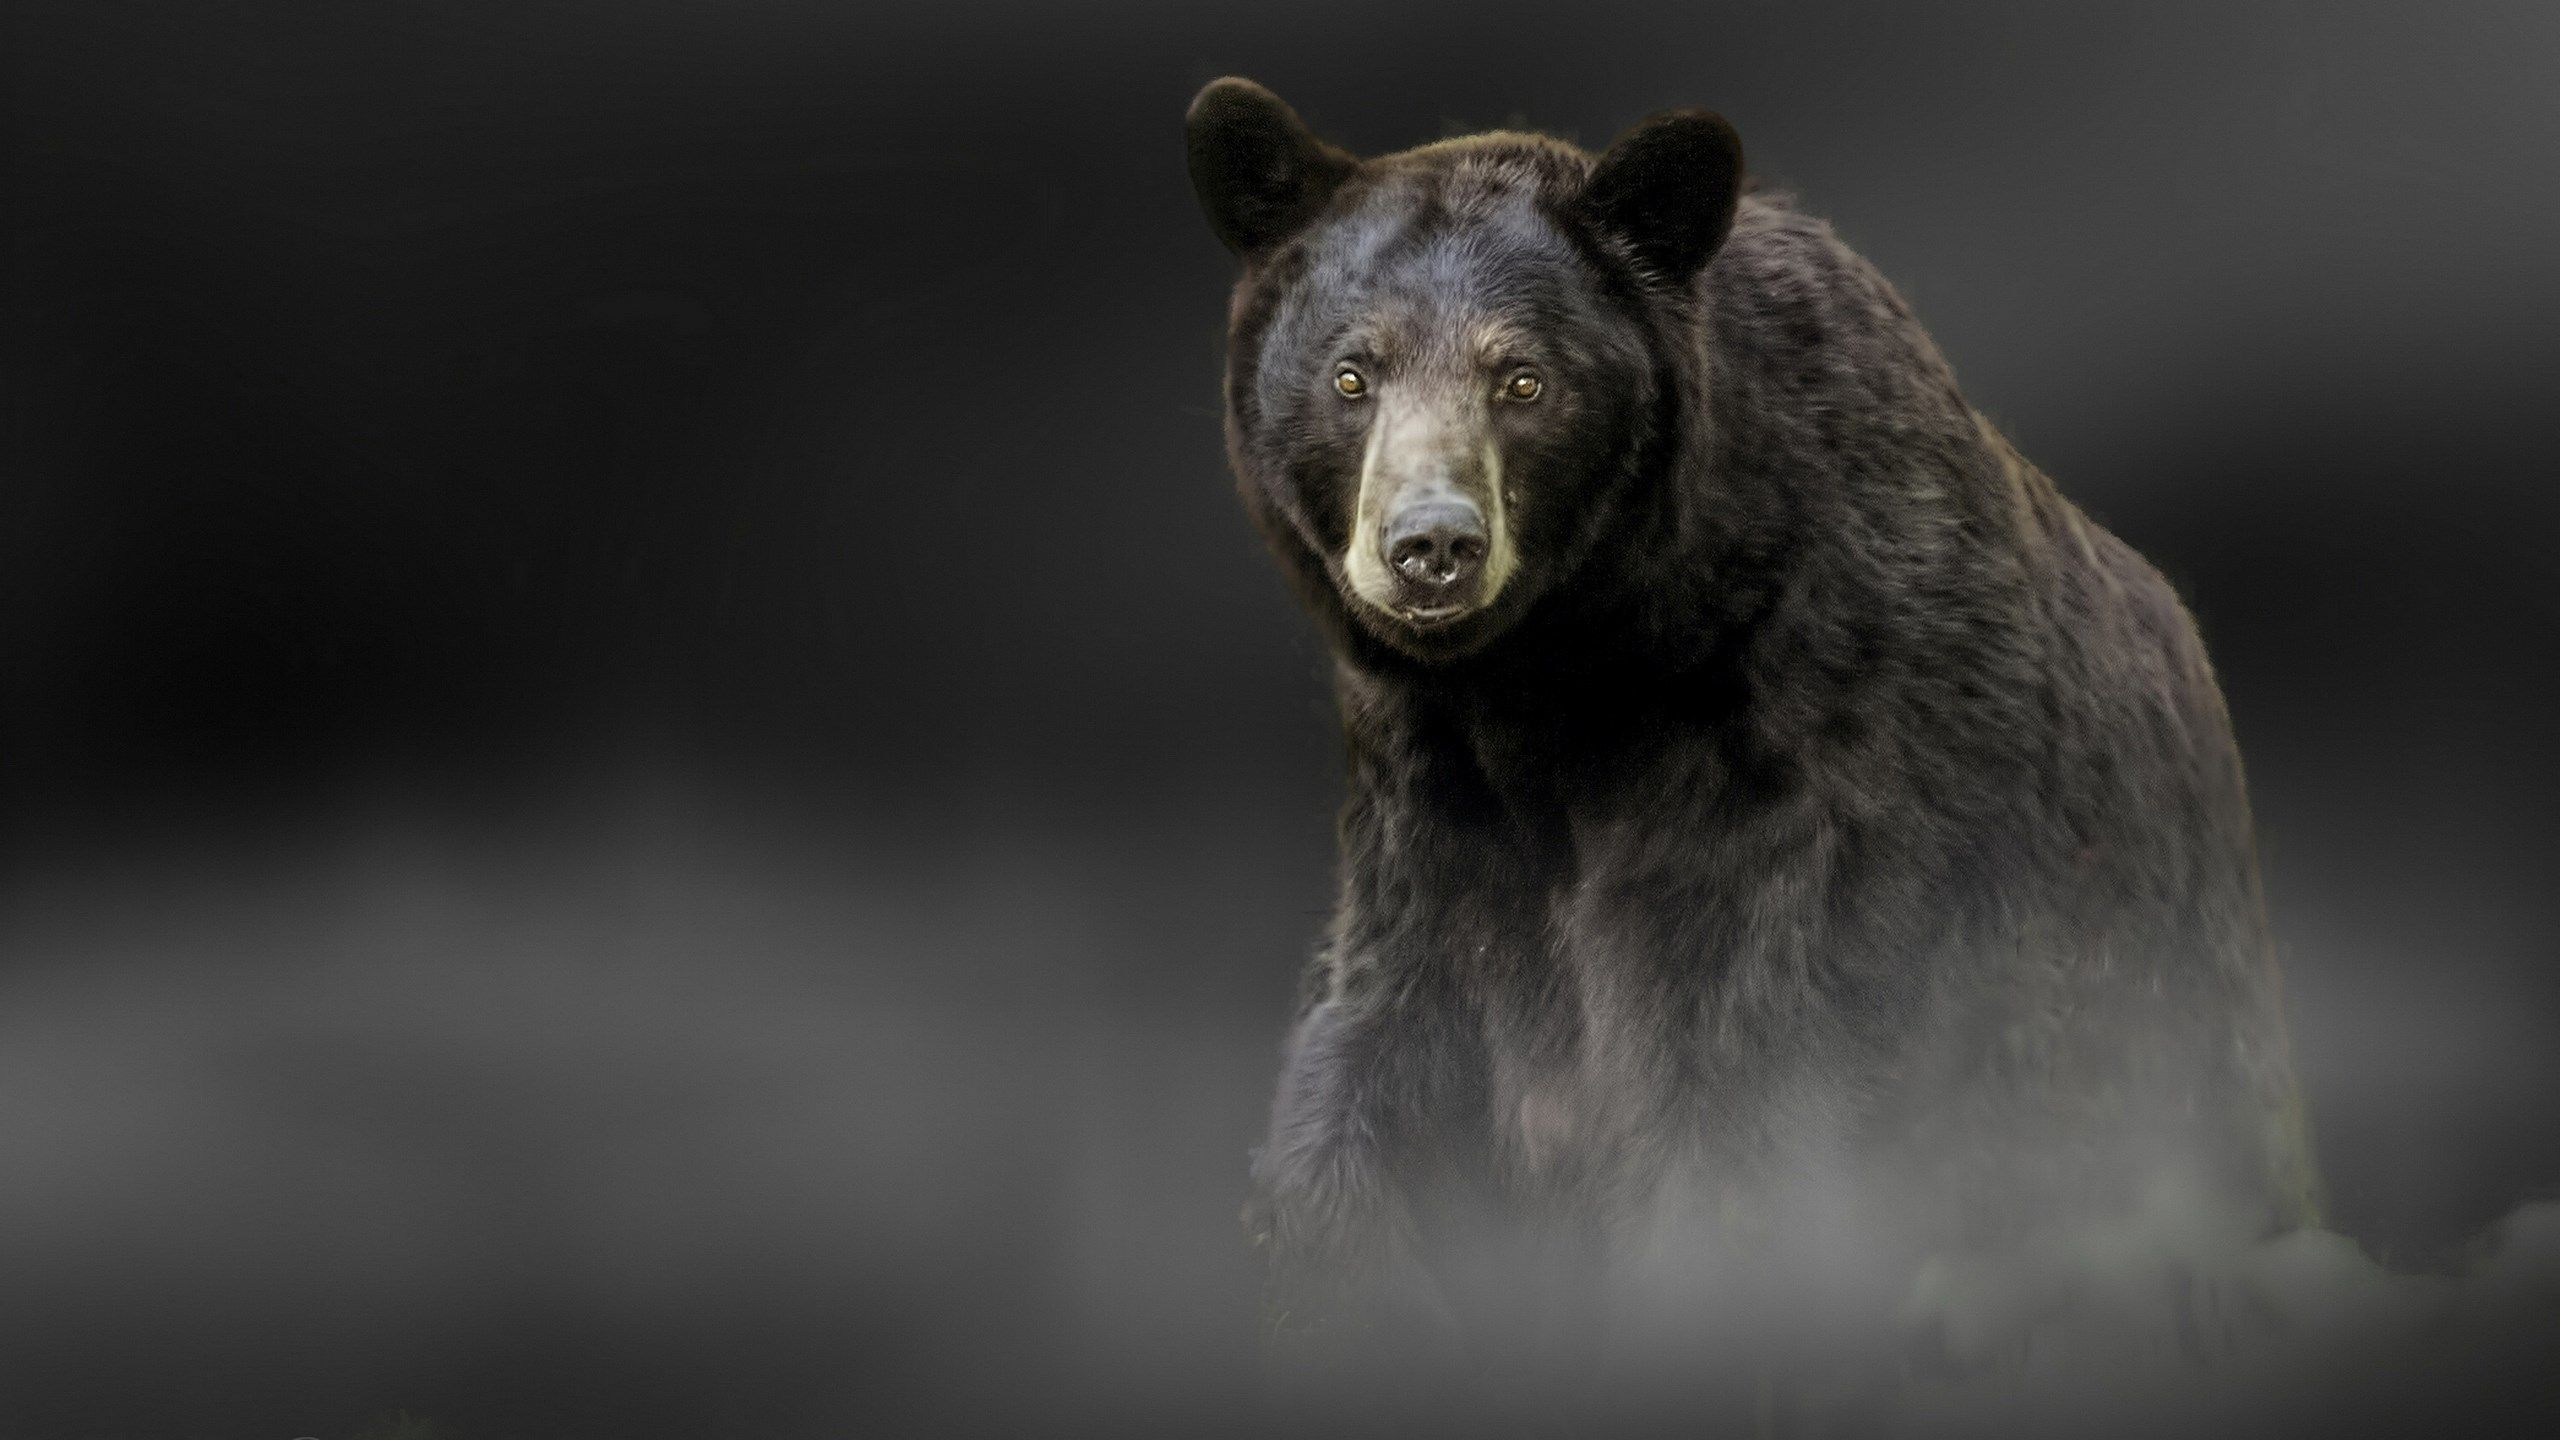 alone black bear hd wallpaper ololoshenka Pinterest